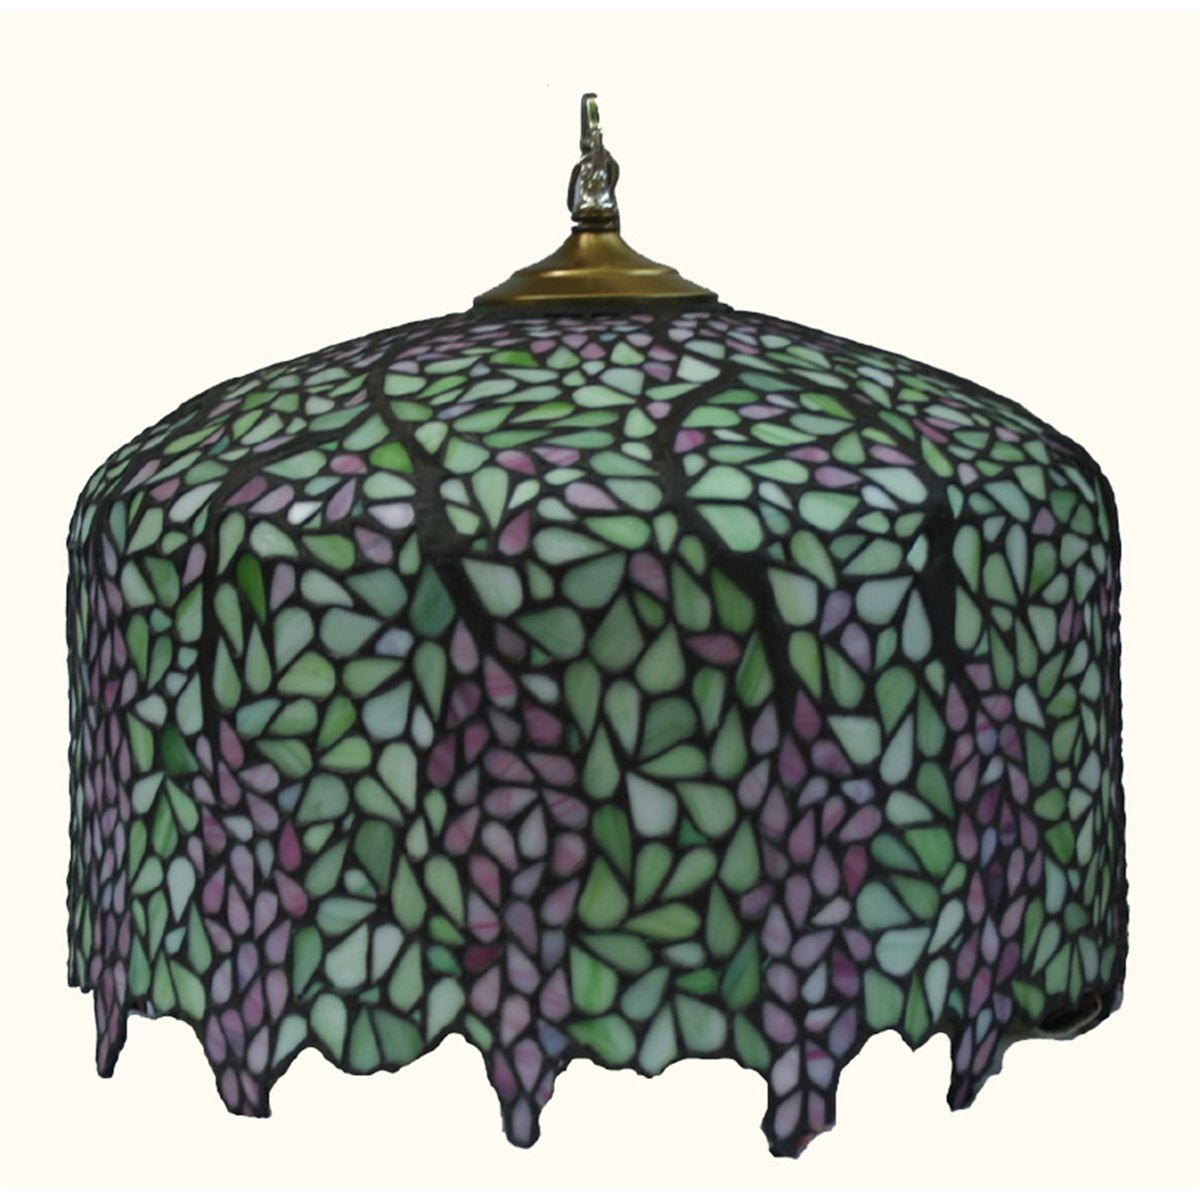 Stained Glass Lamp Shade Wisteria